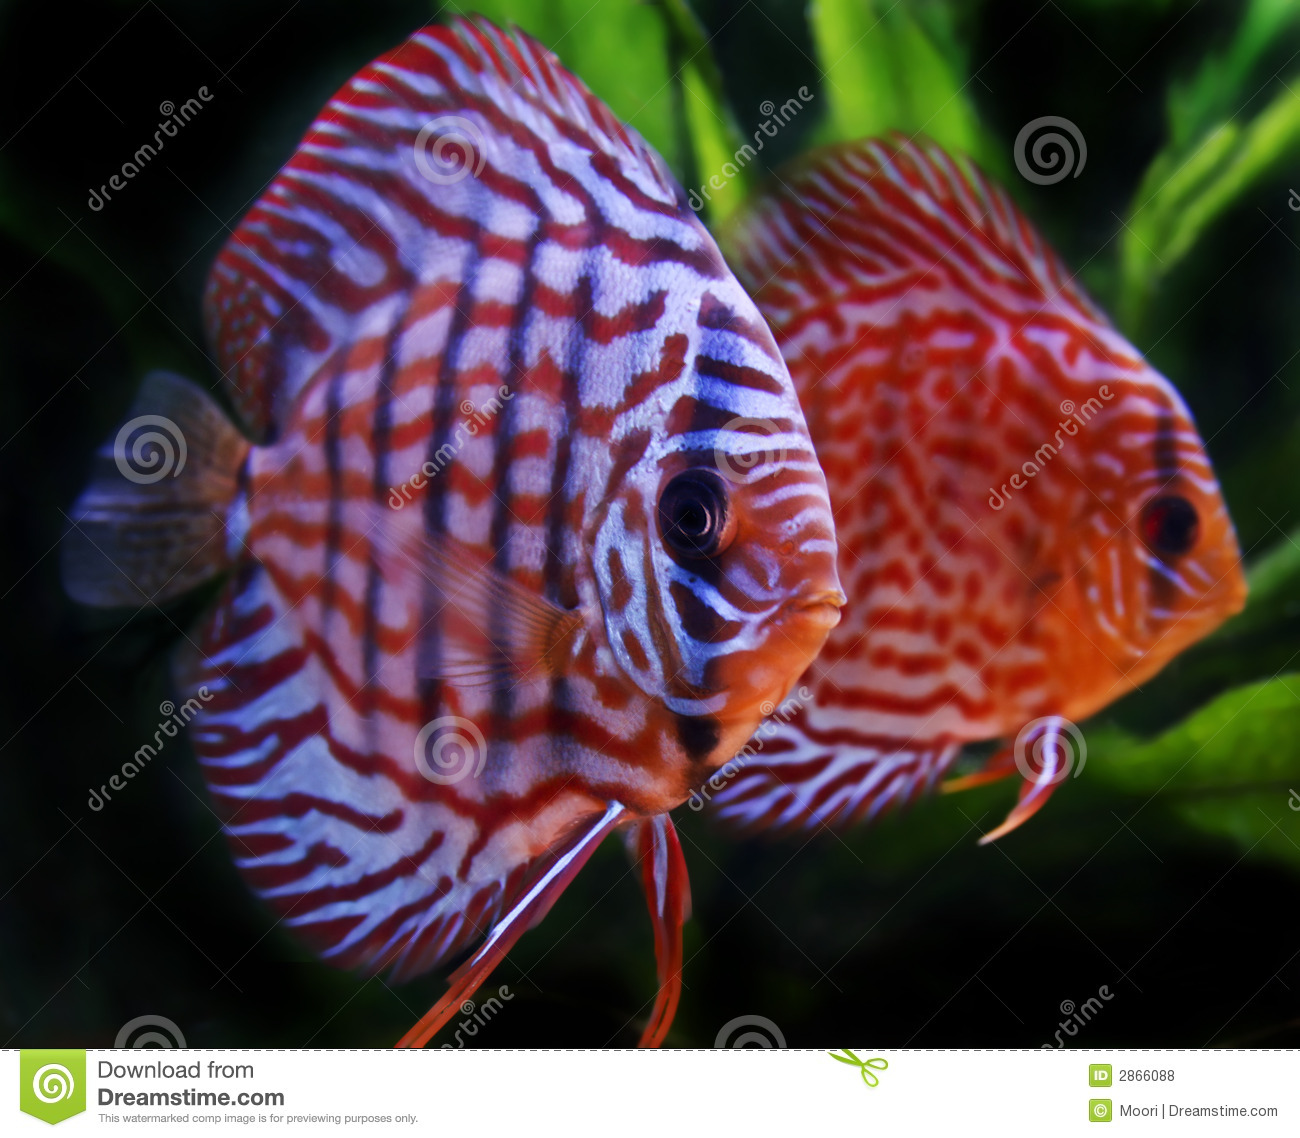 Discus fish stock photo. Image of water, decorative, plants - 2866088